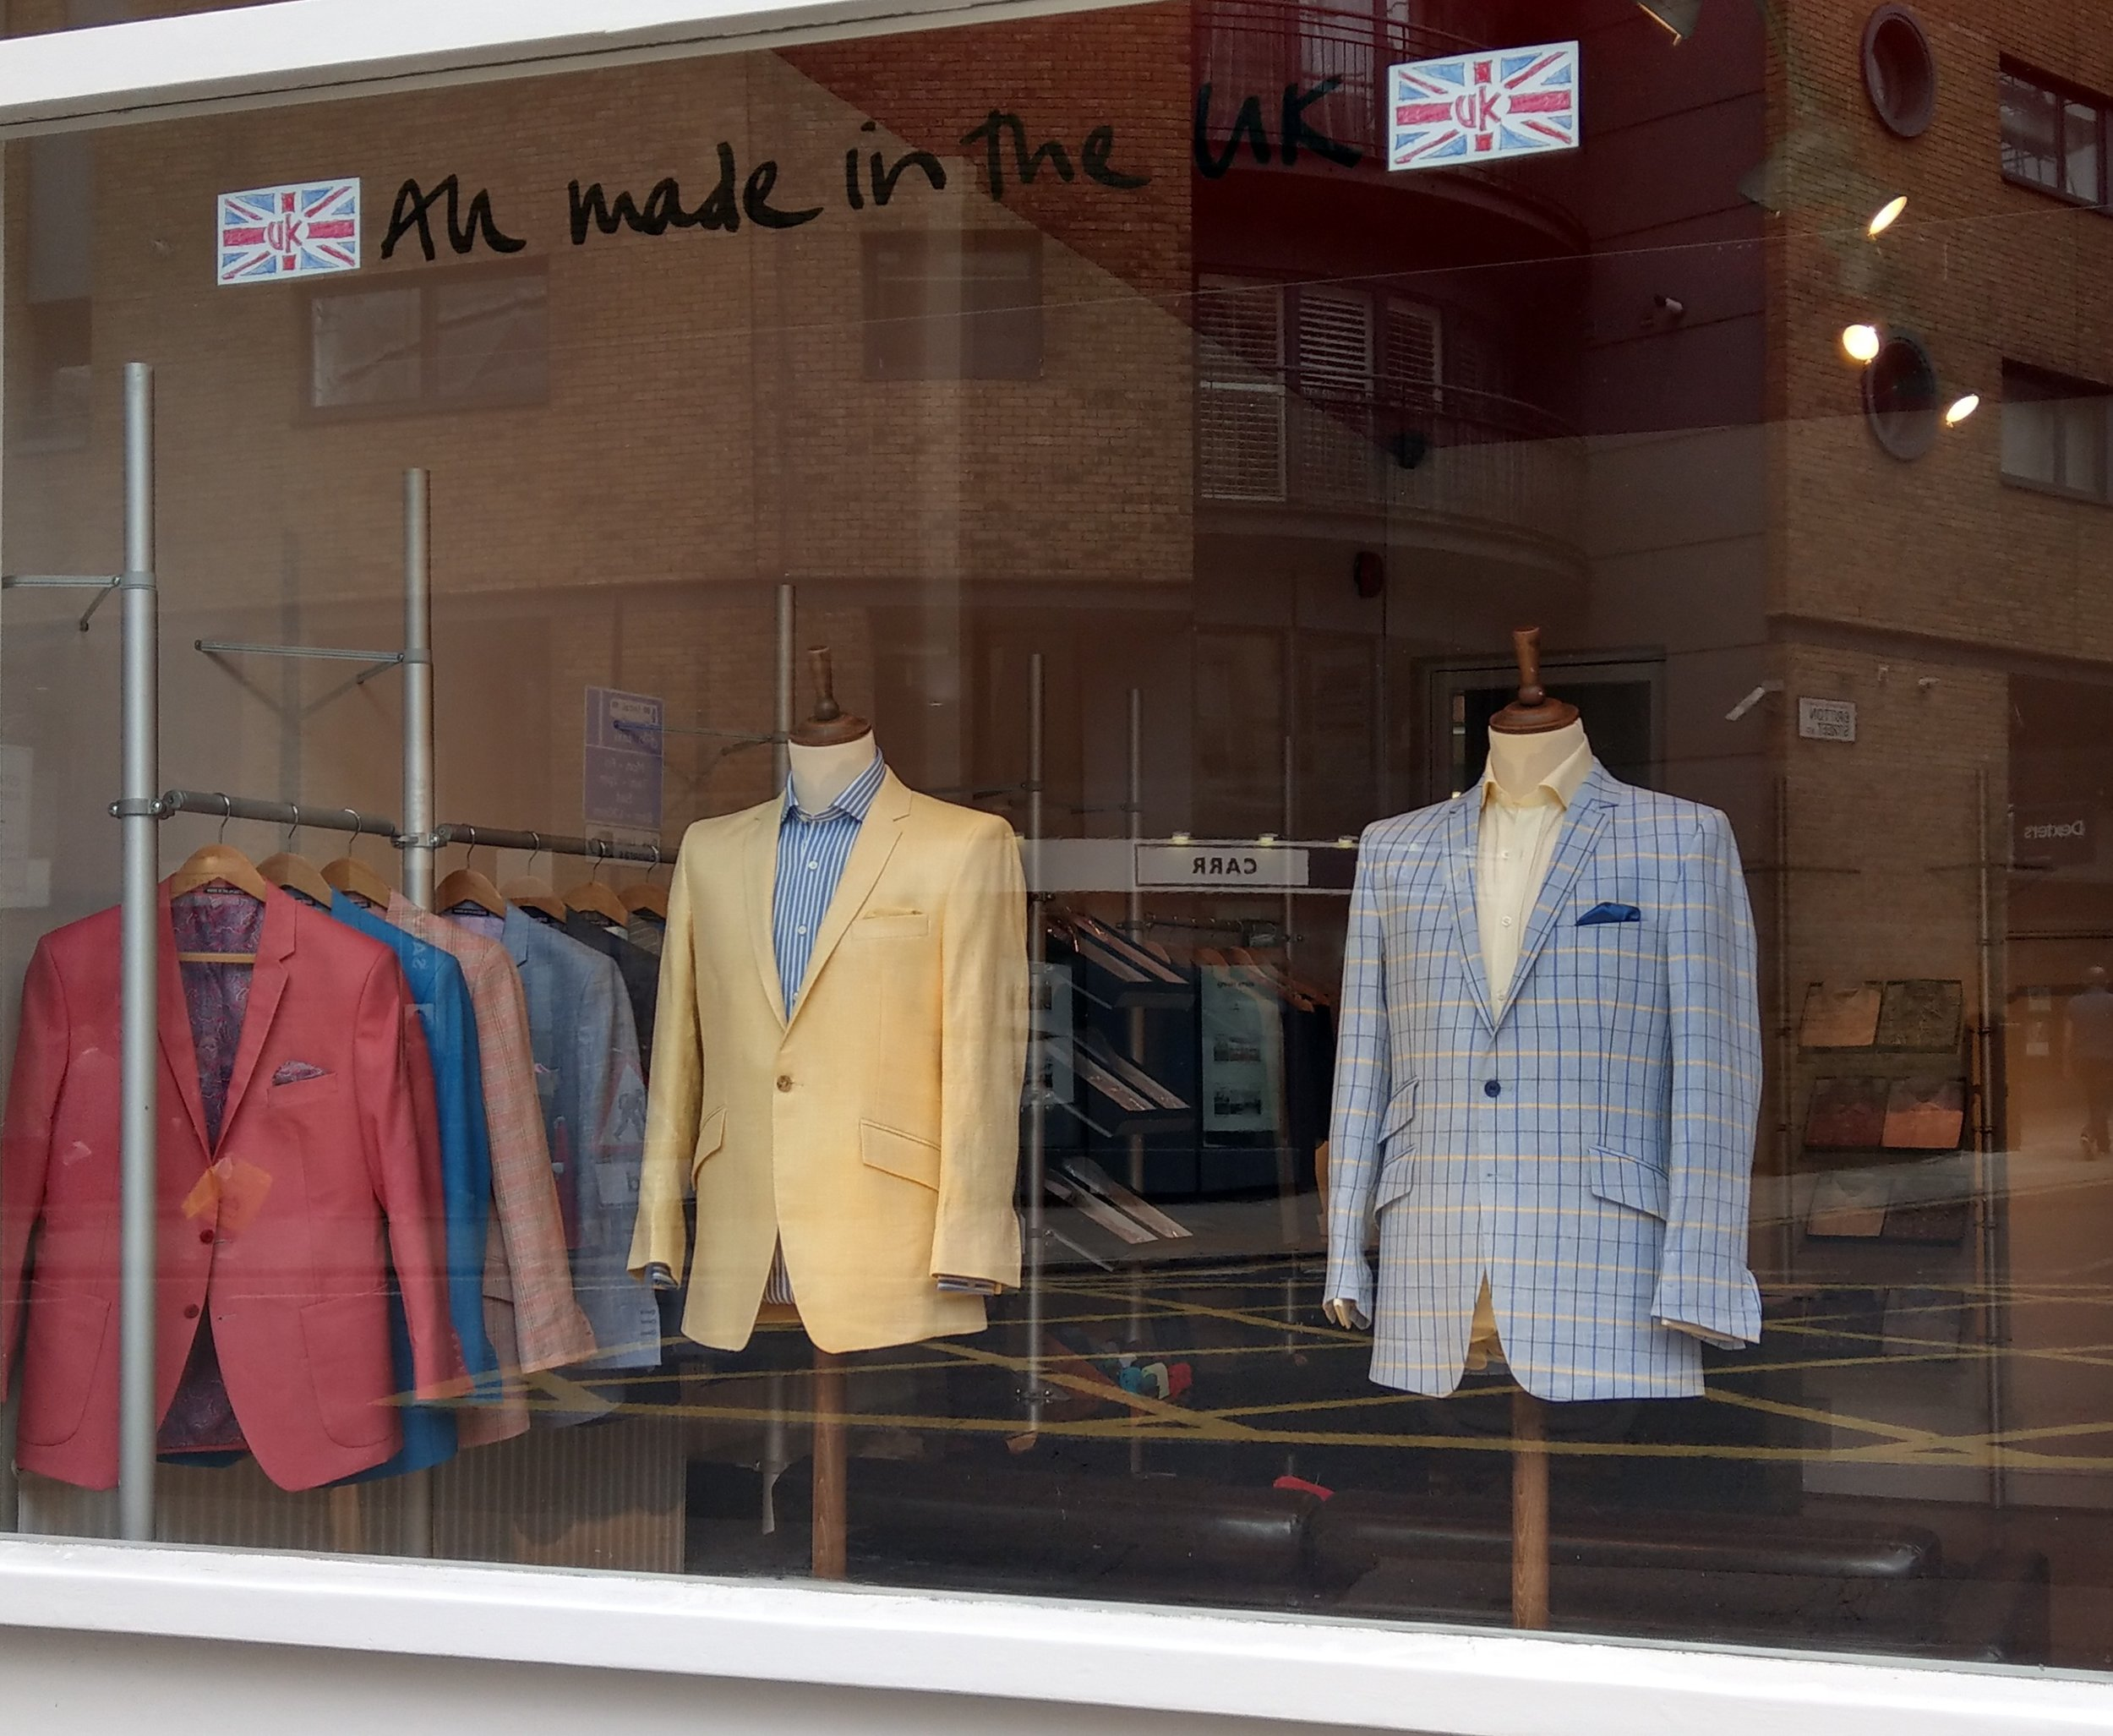 susannah-hall--bespoke-tailor-jacket-suits-dugdale-bateman-ogden-silk-linen-made-britain-uk.jpg